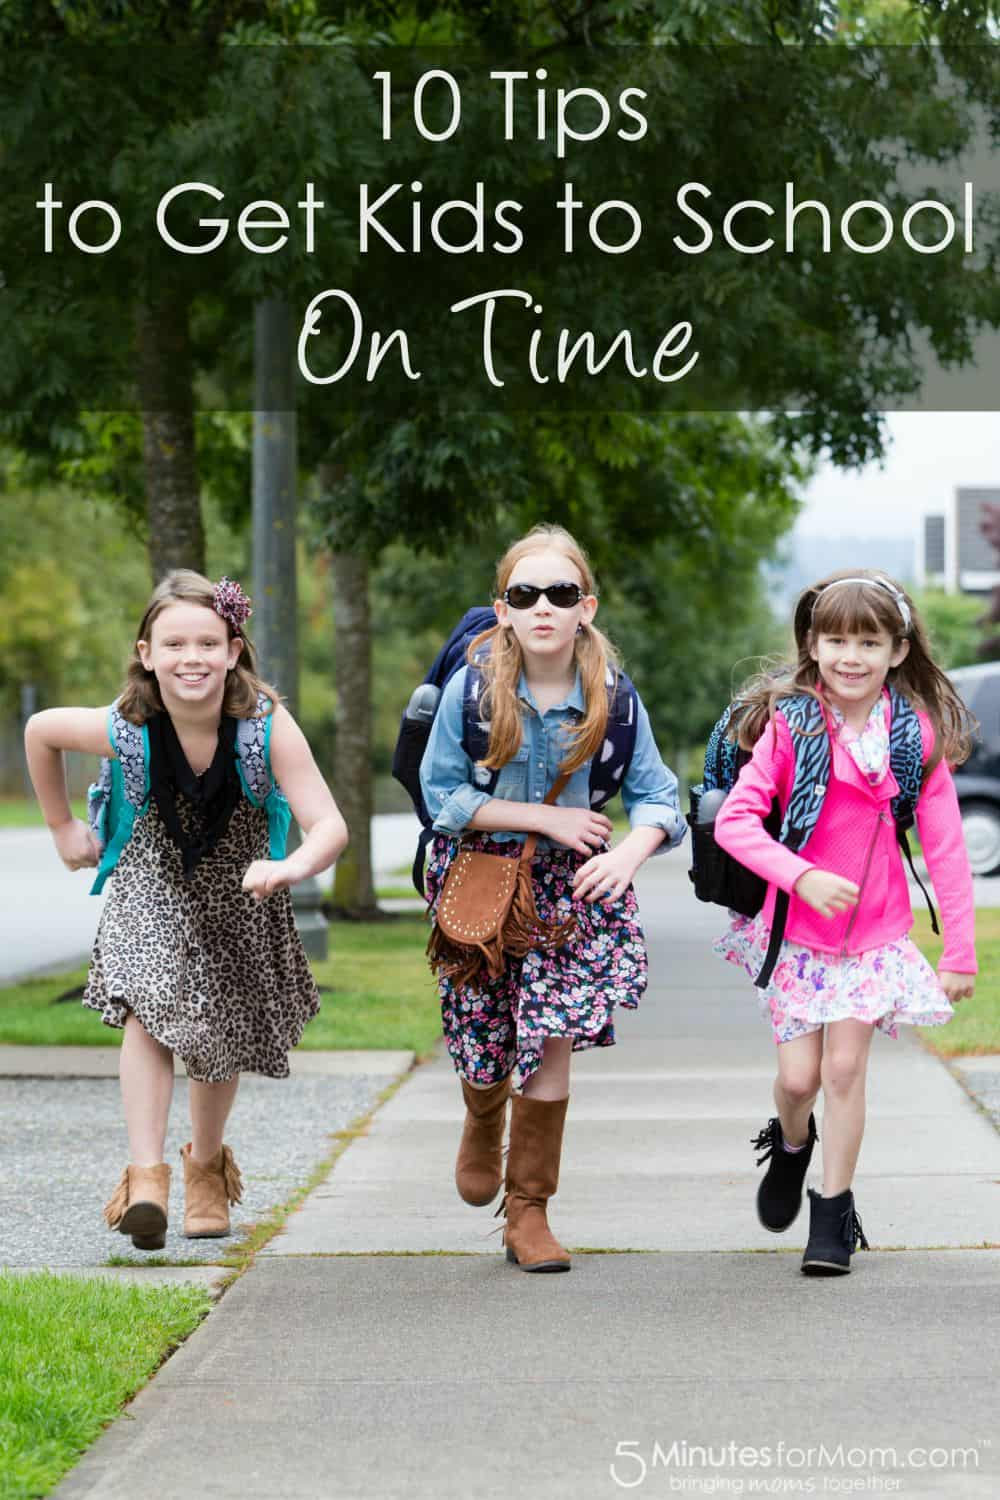 10 Tips to Get Kids to School On Time